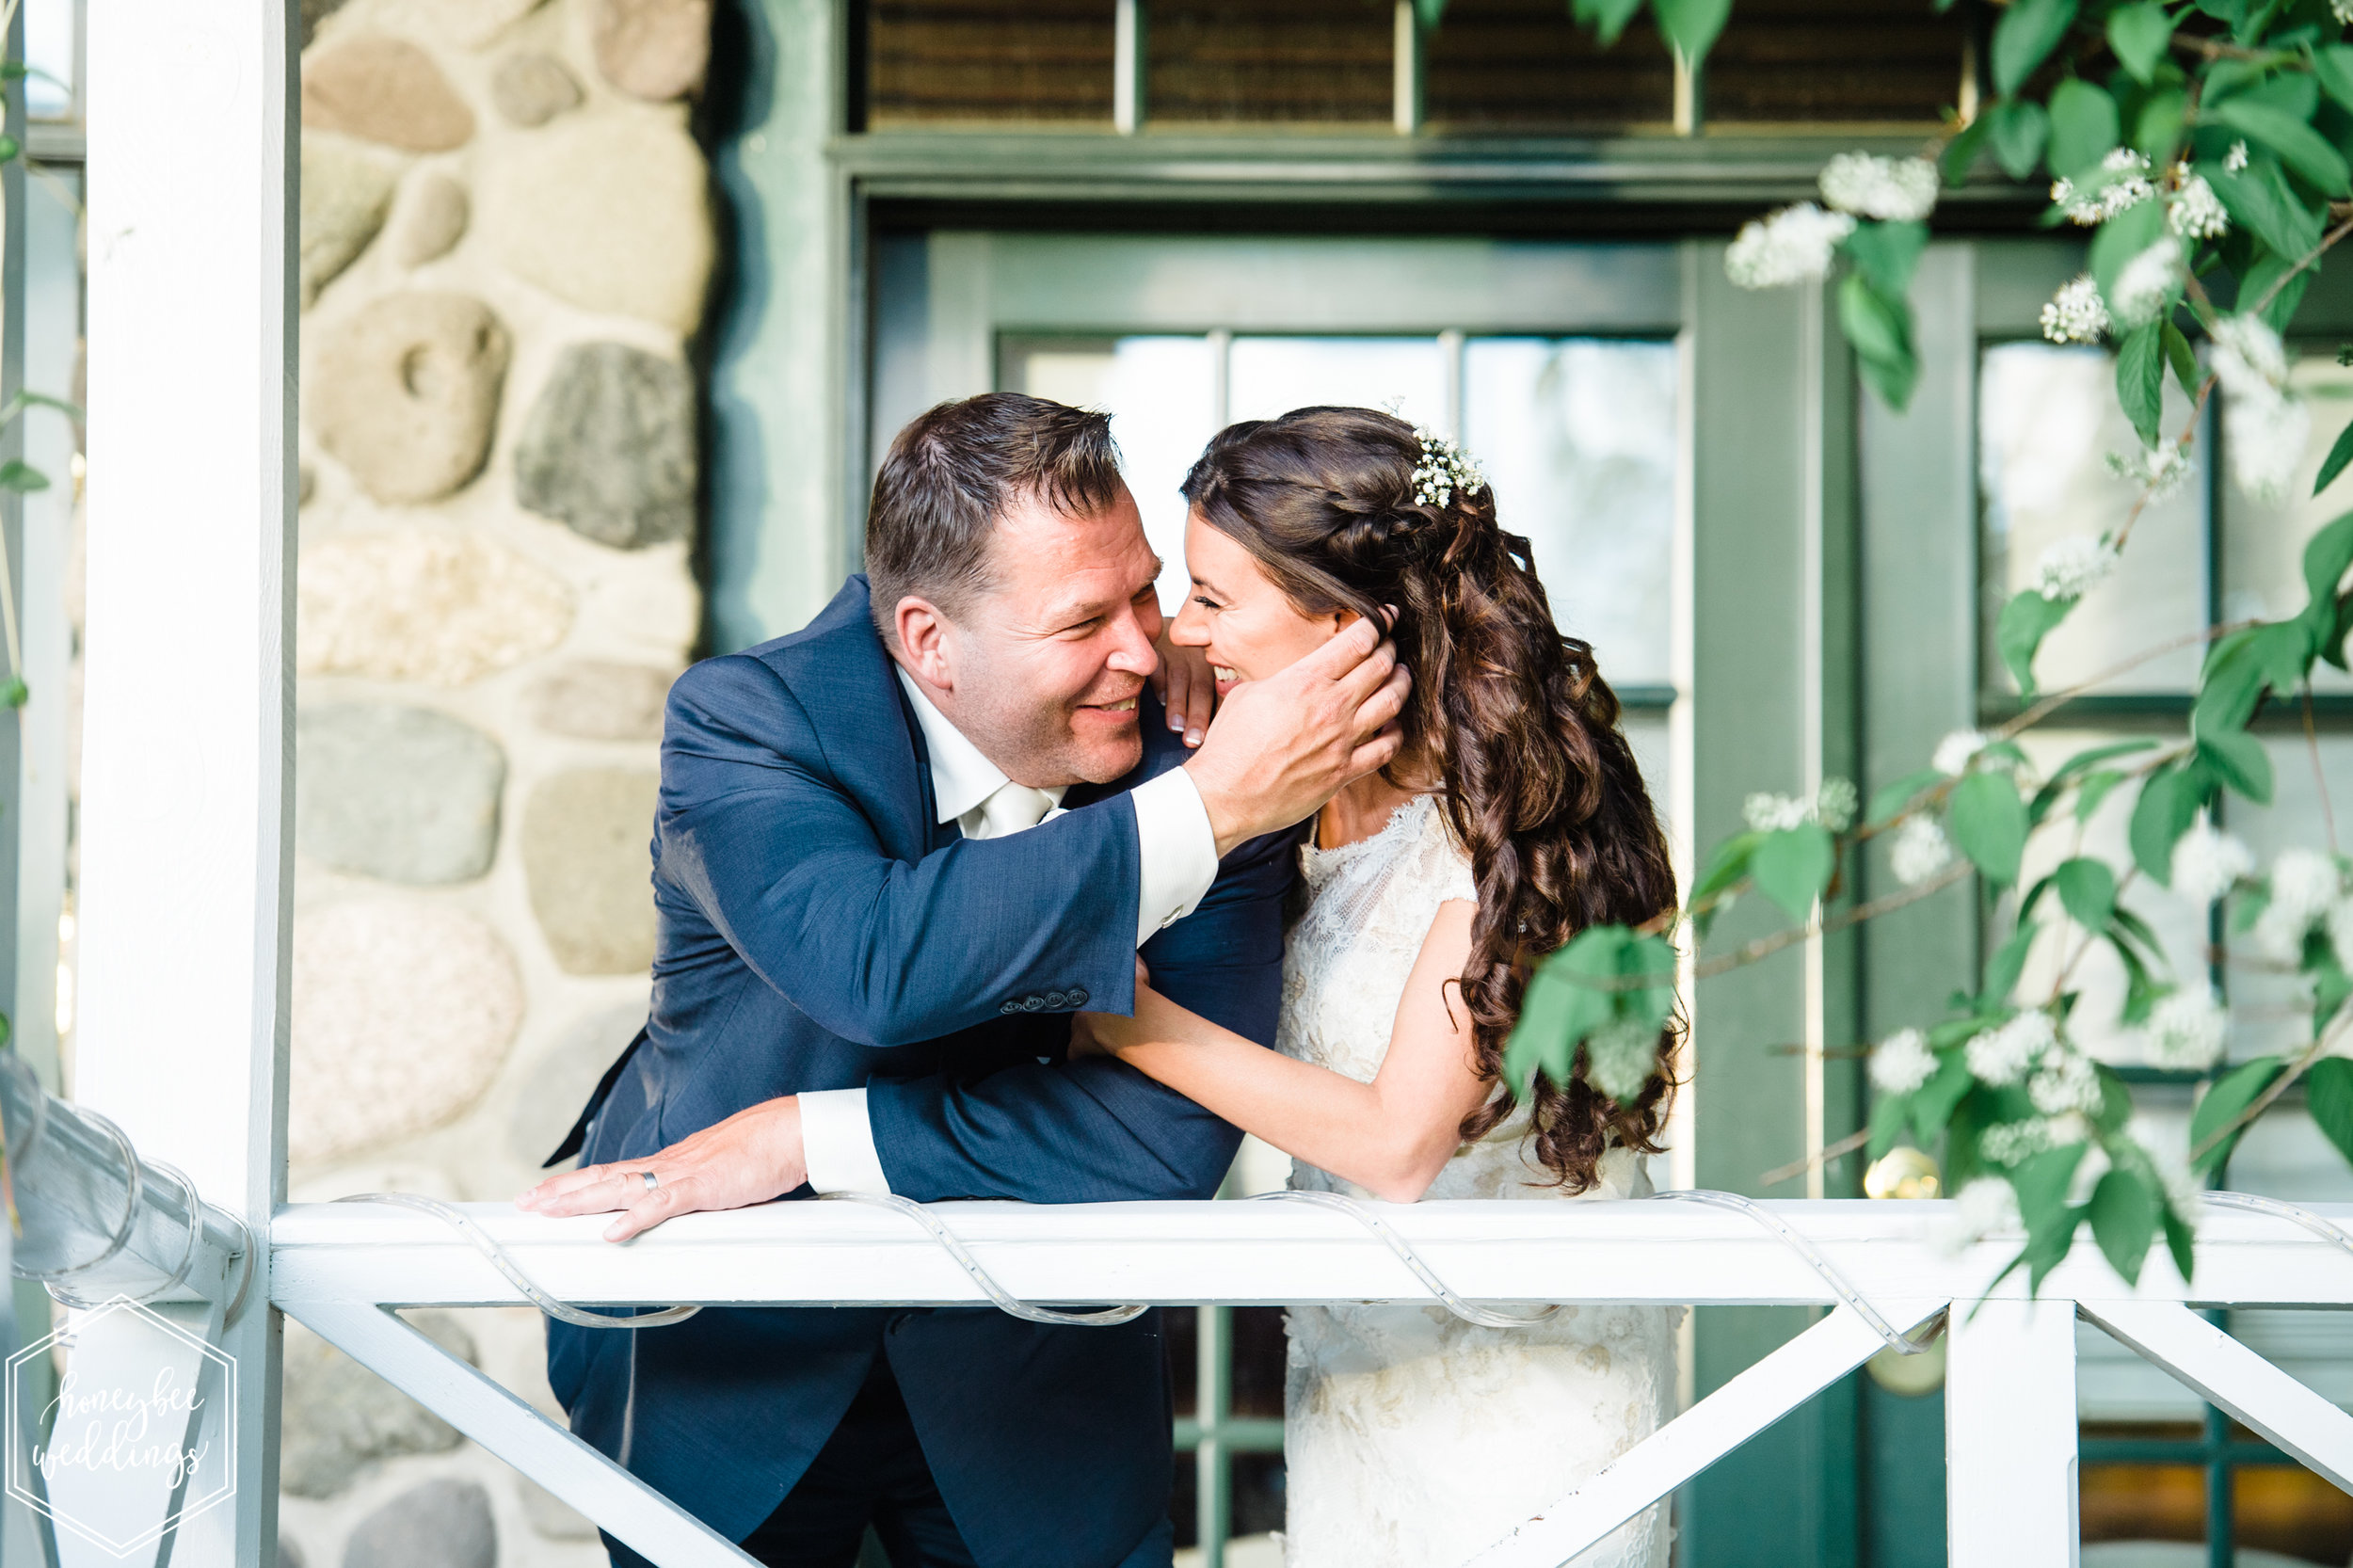 062Montana wedding photographer videographer_Chico hot springs wedding_Honeybee Weddings_Claudia & Bill_June 03, 2019-826.jpg